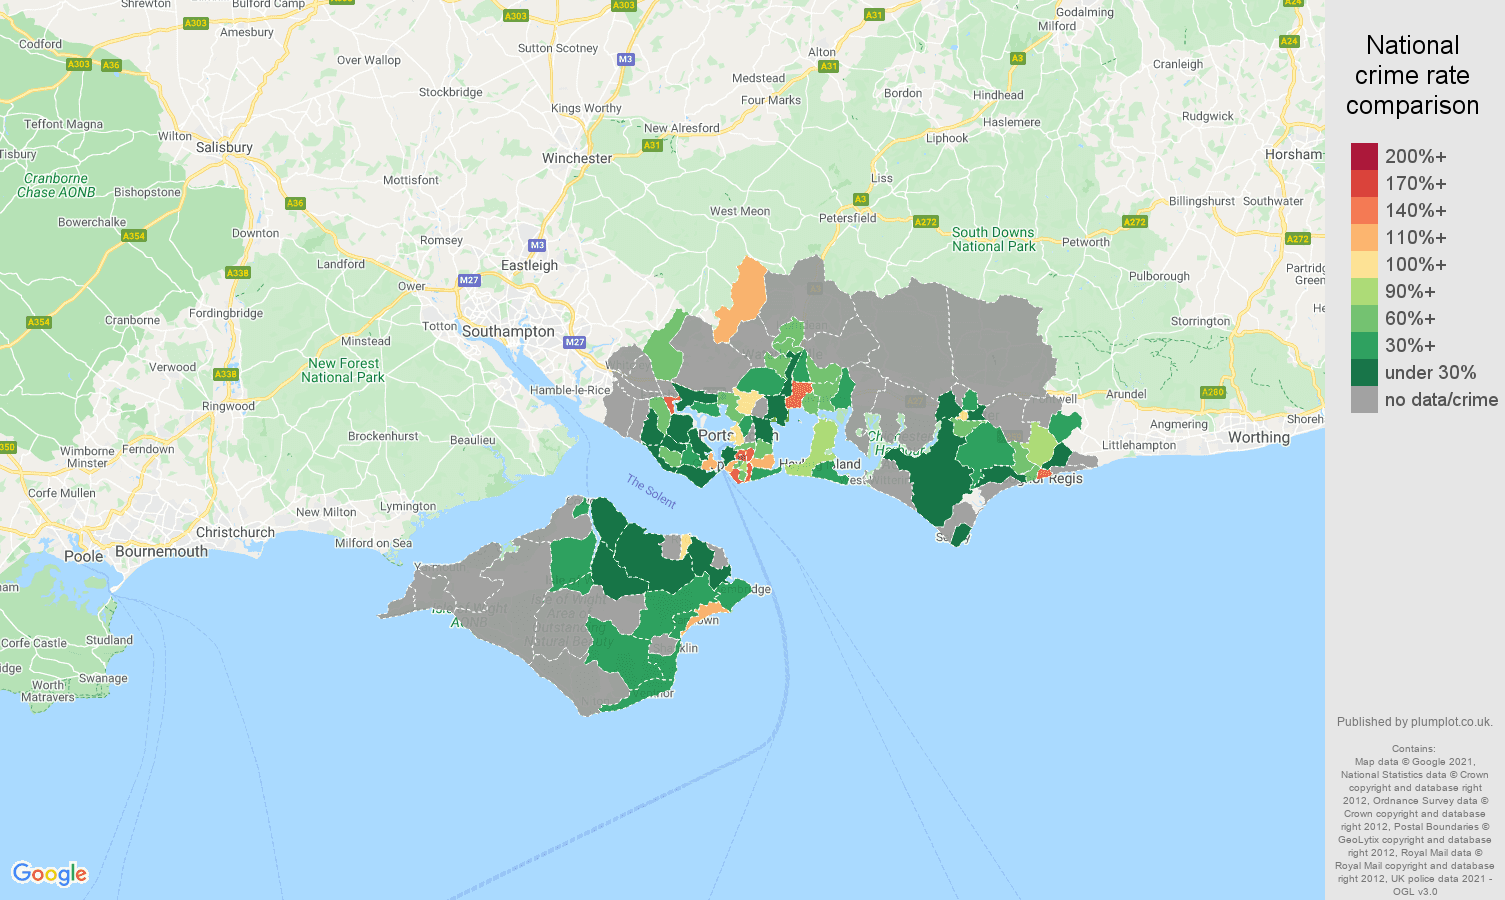 Portsmouth theft from the person crime rate comparison map